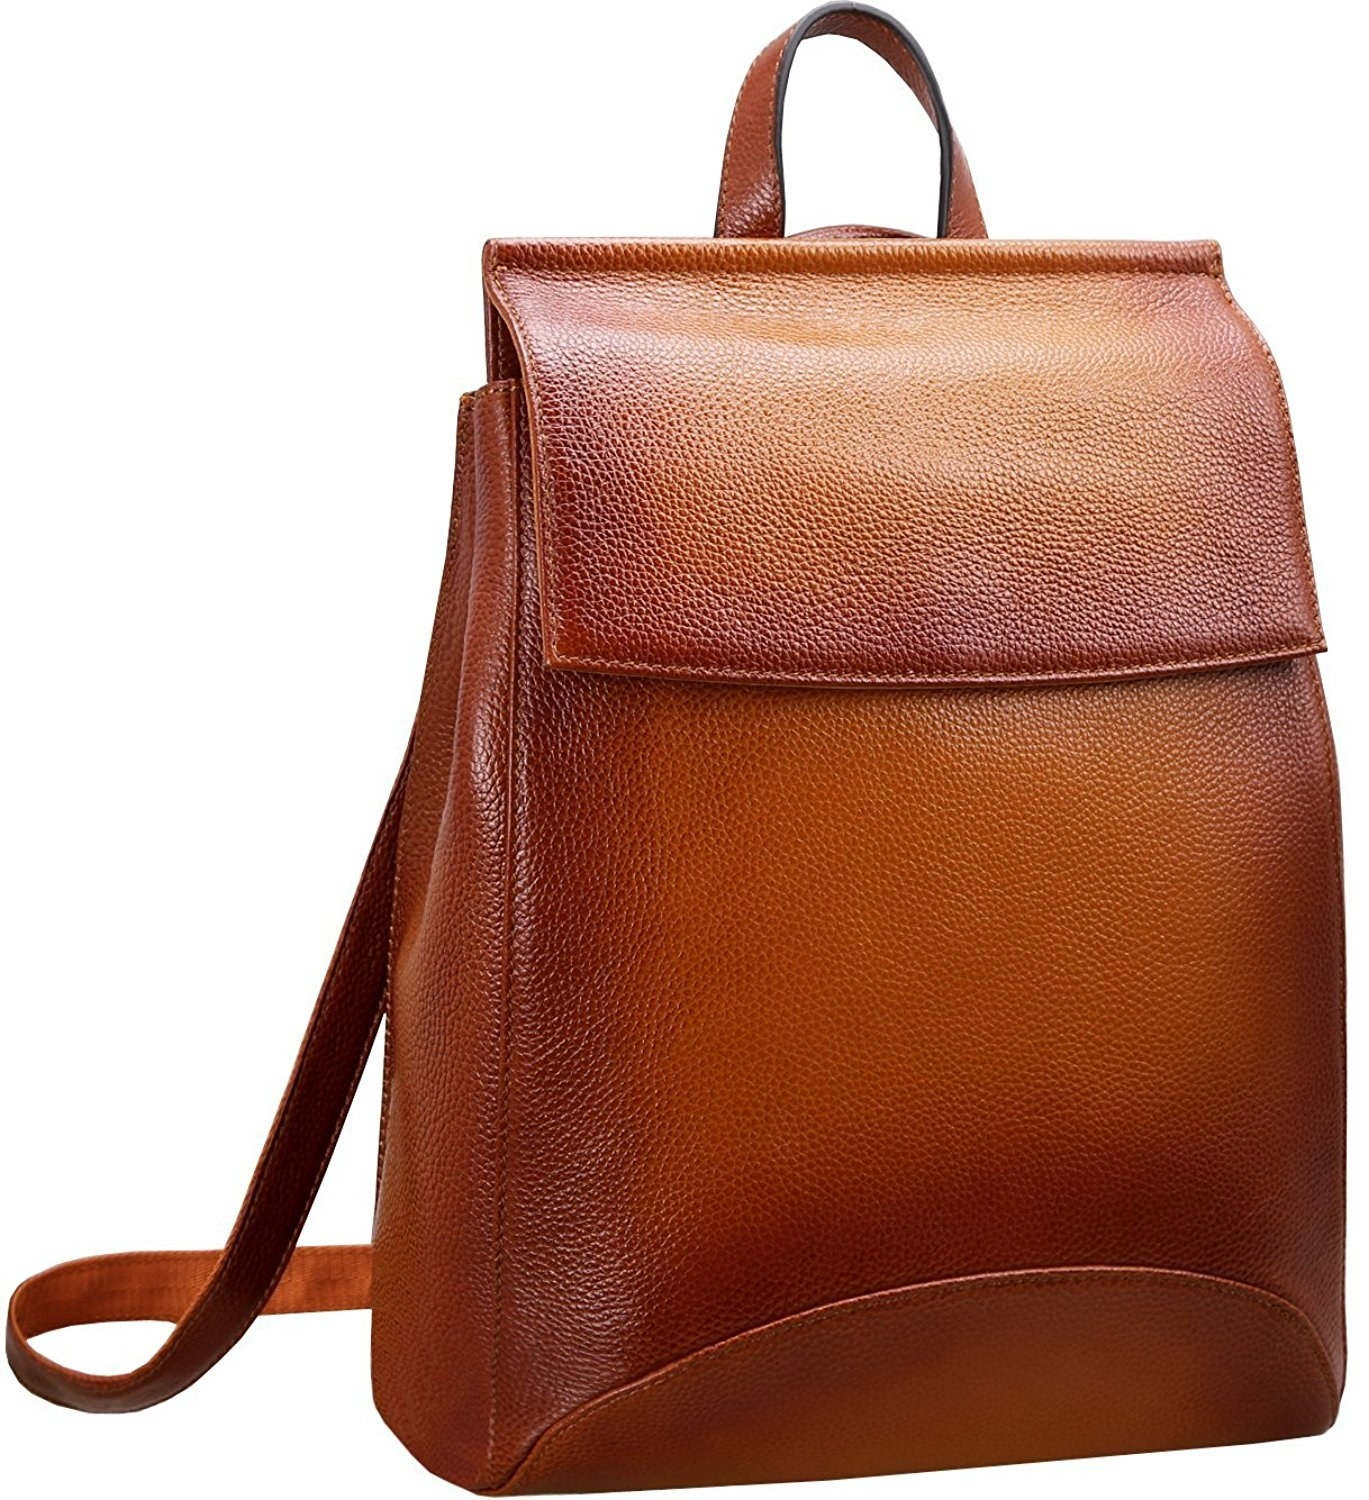 dd37ae1a6e35 A minimalist backpack that conveniently transforms into a shoulder bag with  the pull of a handle.